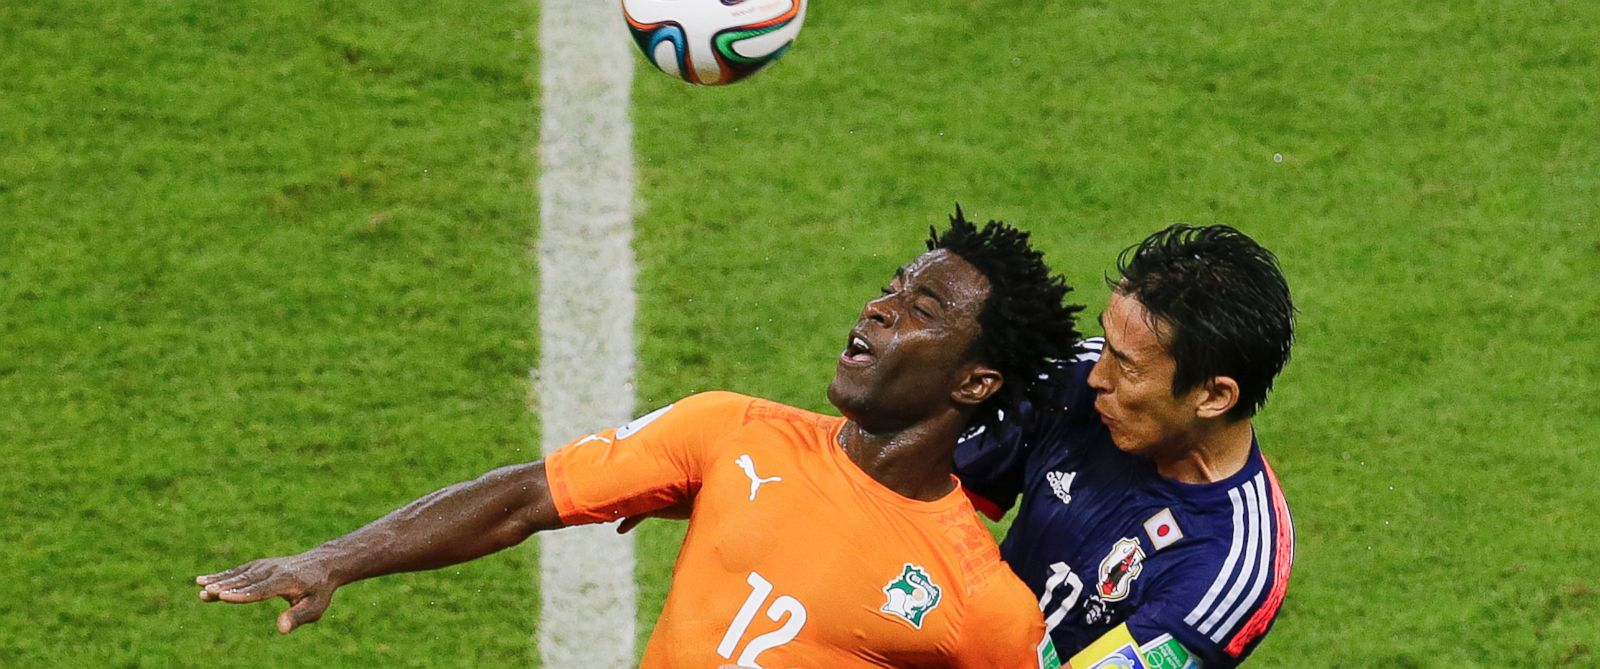 PHOTO: Japans Makoto Hasebe, right, and Ivory Coasts Wilfried Bony go for a header during the group C World Cup soccer match between Ivory Coast and Japan at the Arena Pernambuco in Recife, Brazil, Saturday, June 14, 2014.